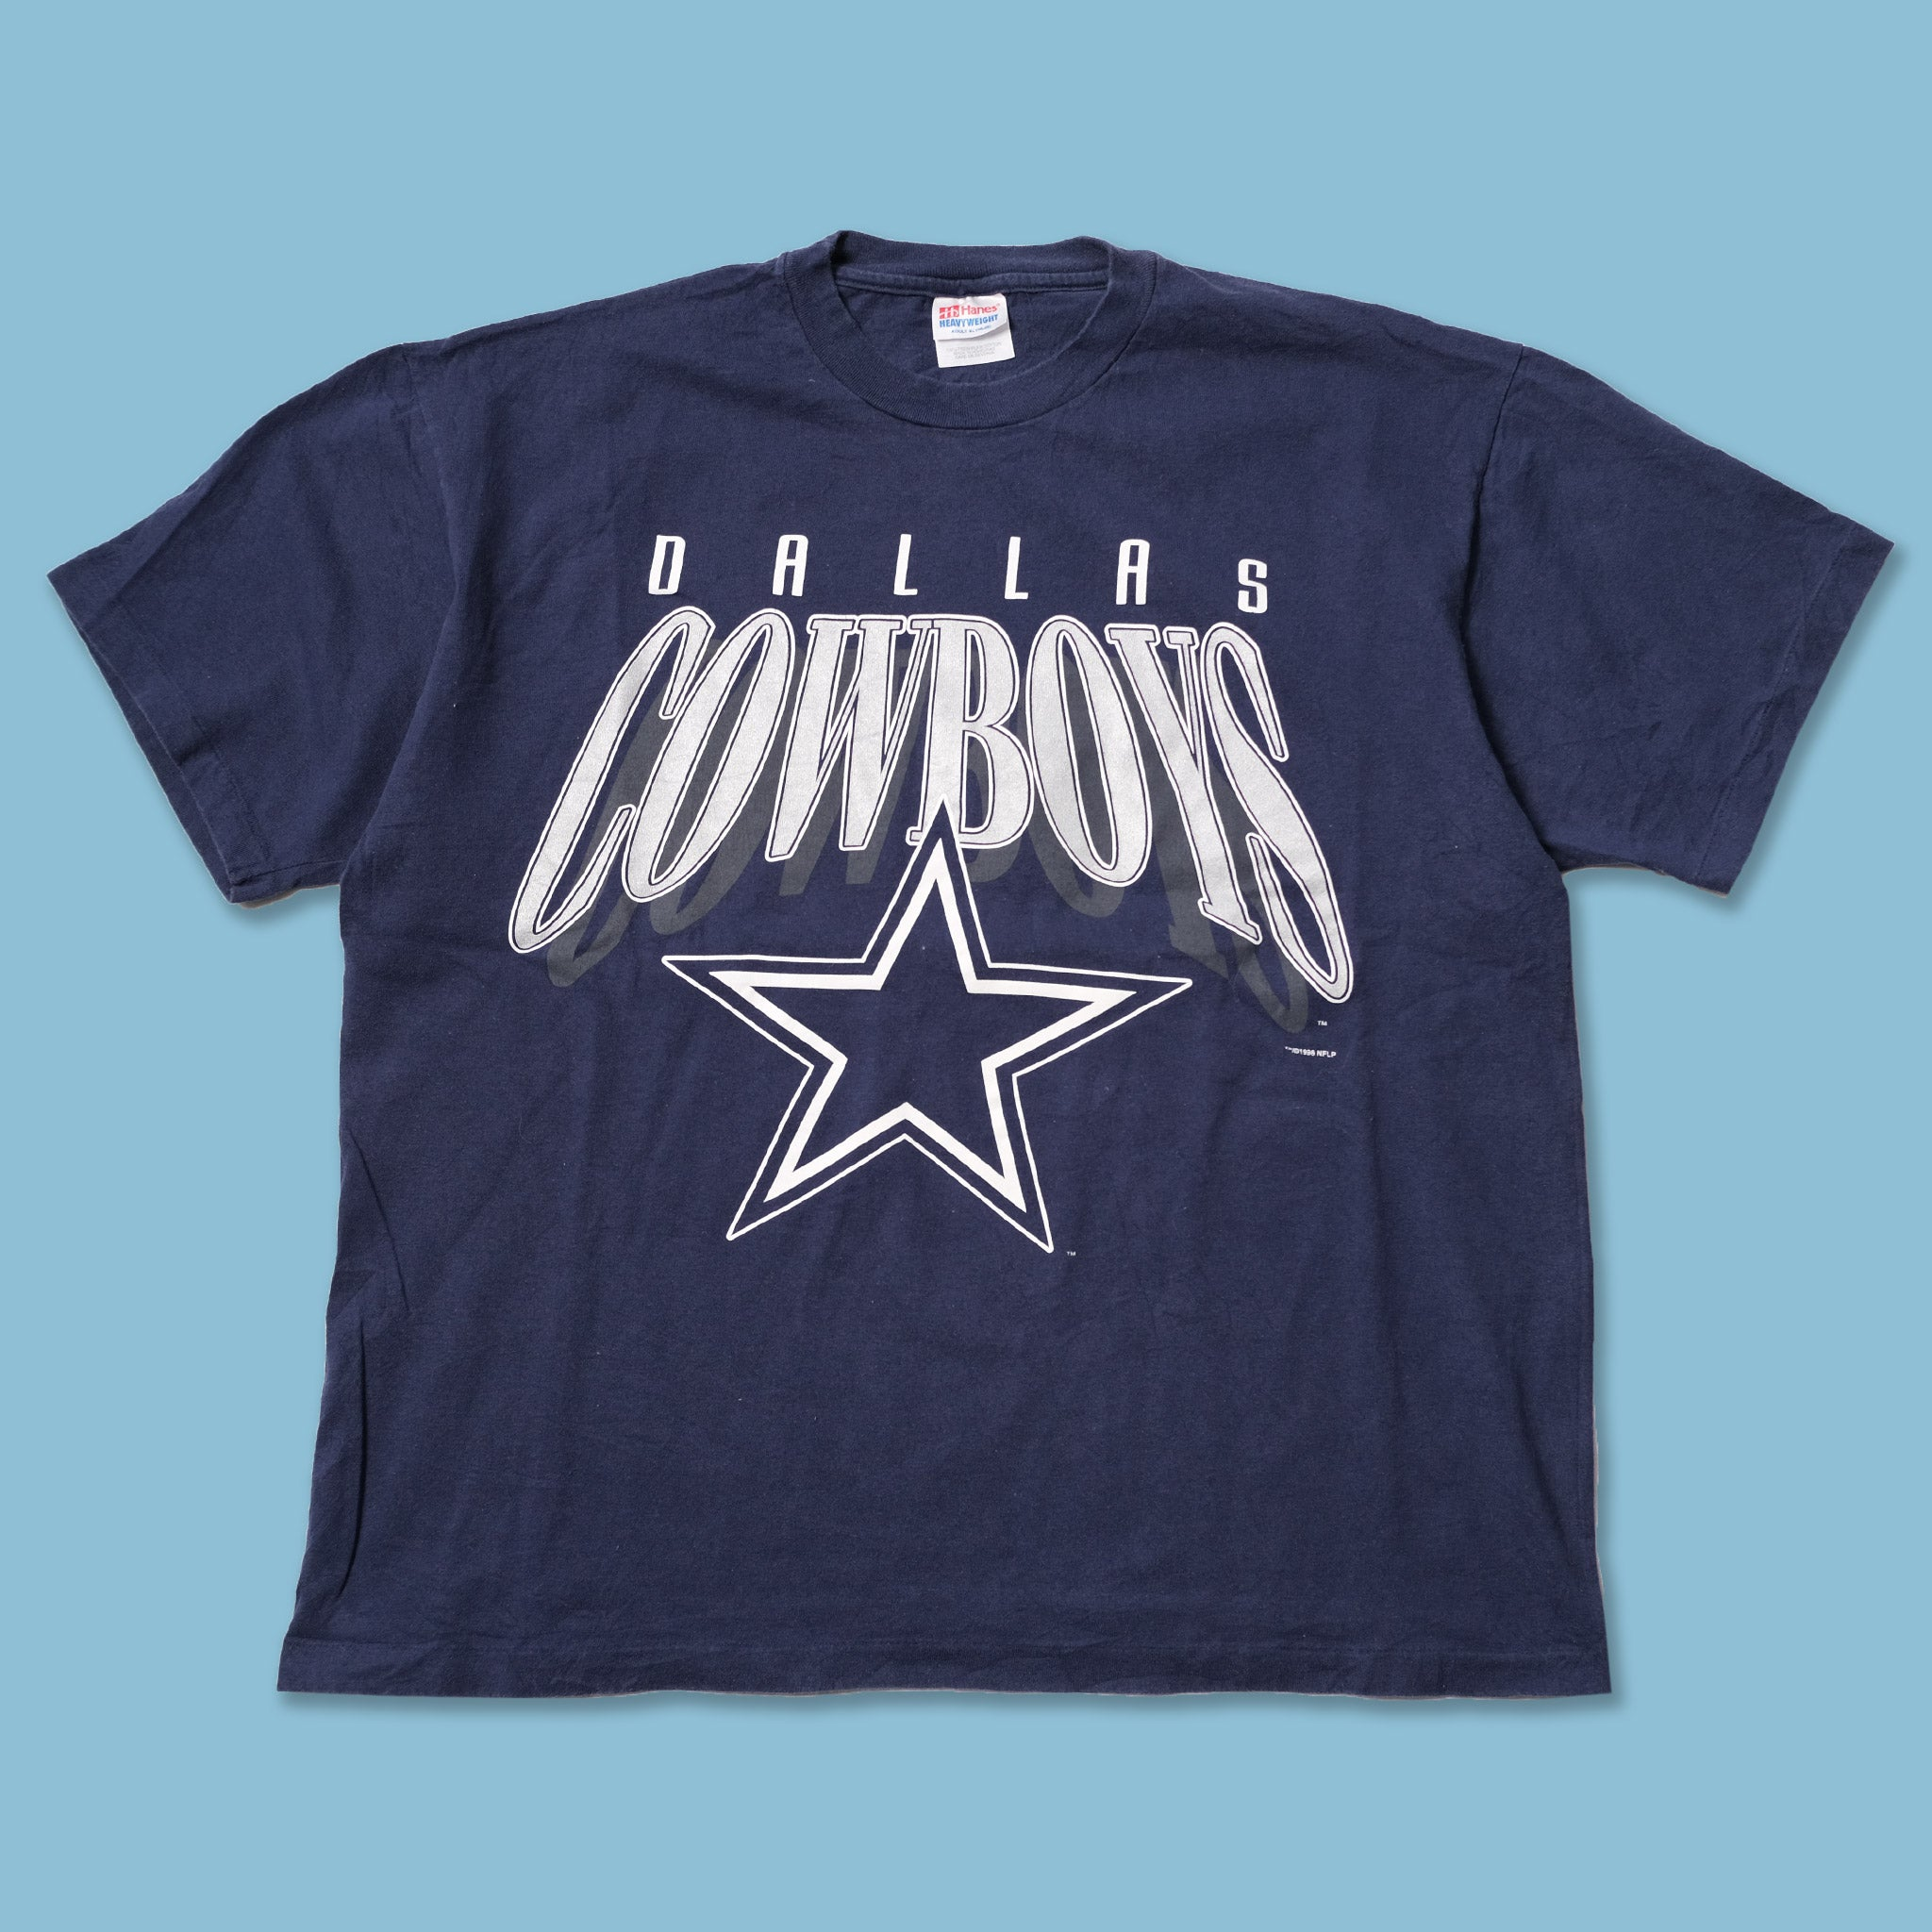 Vintage 1996 Dallas Cowboys T-Shirt XLarge